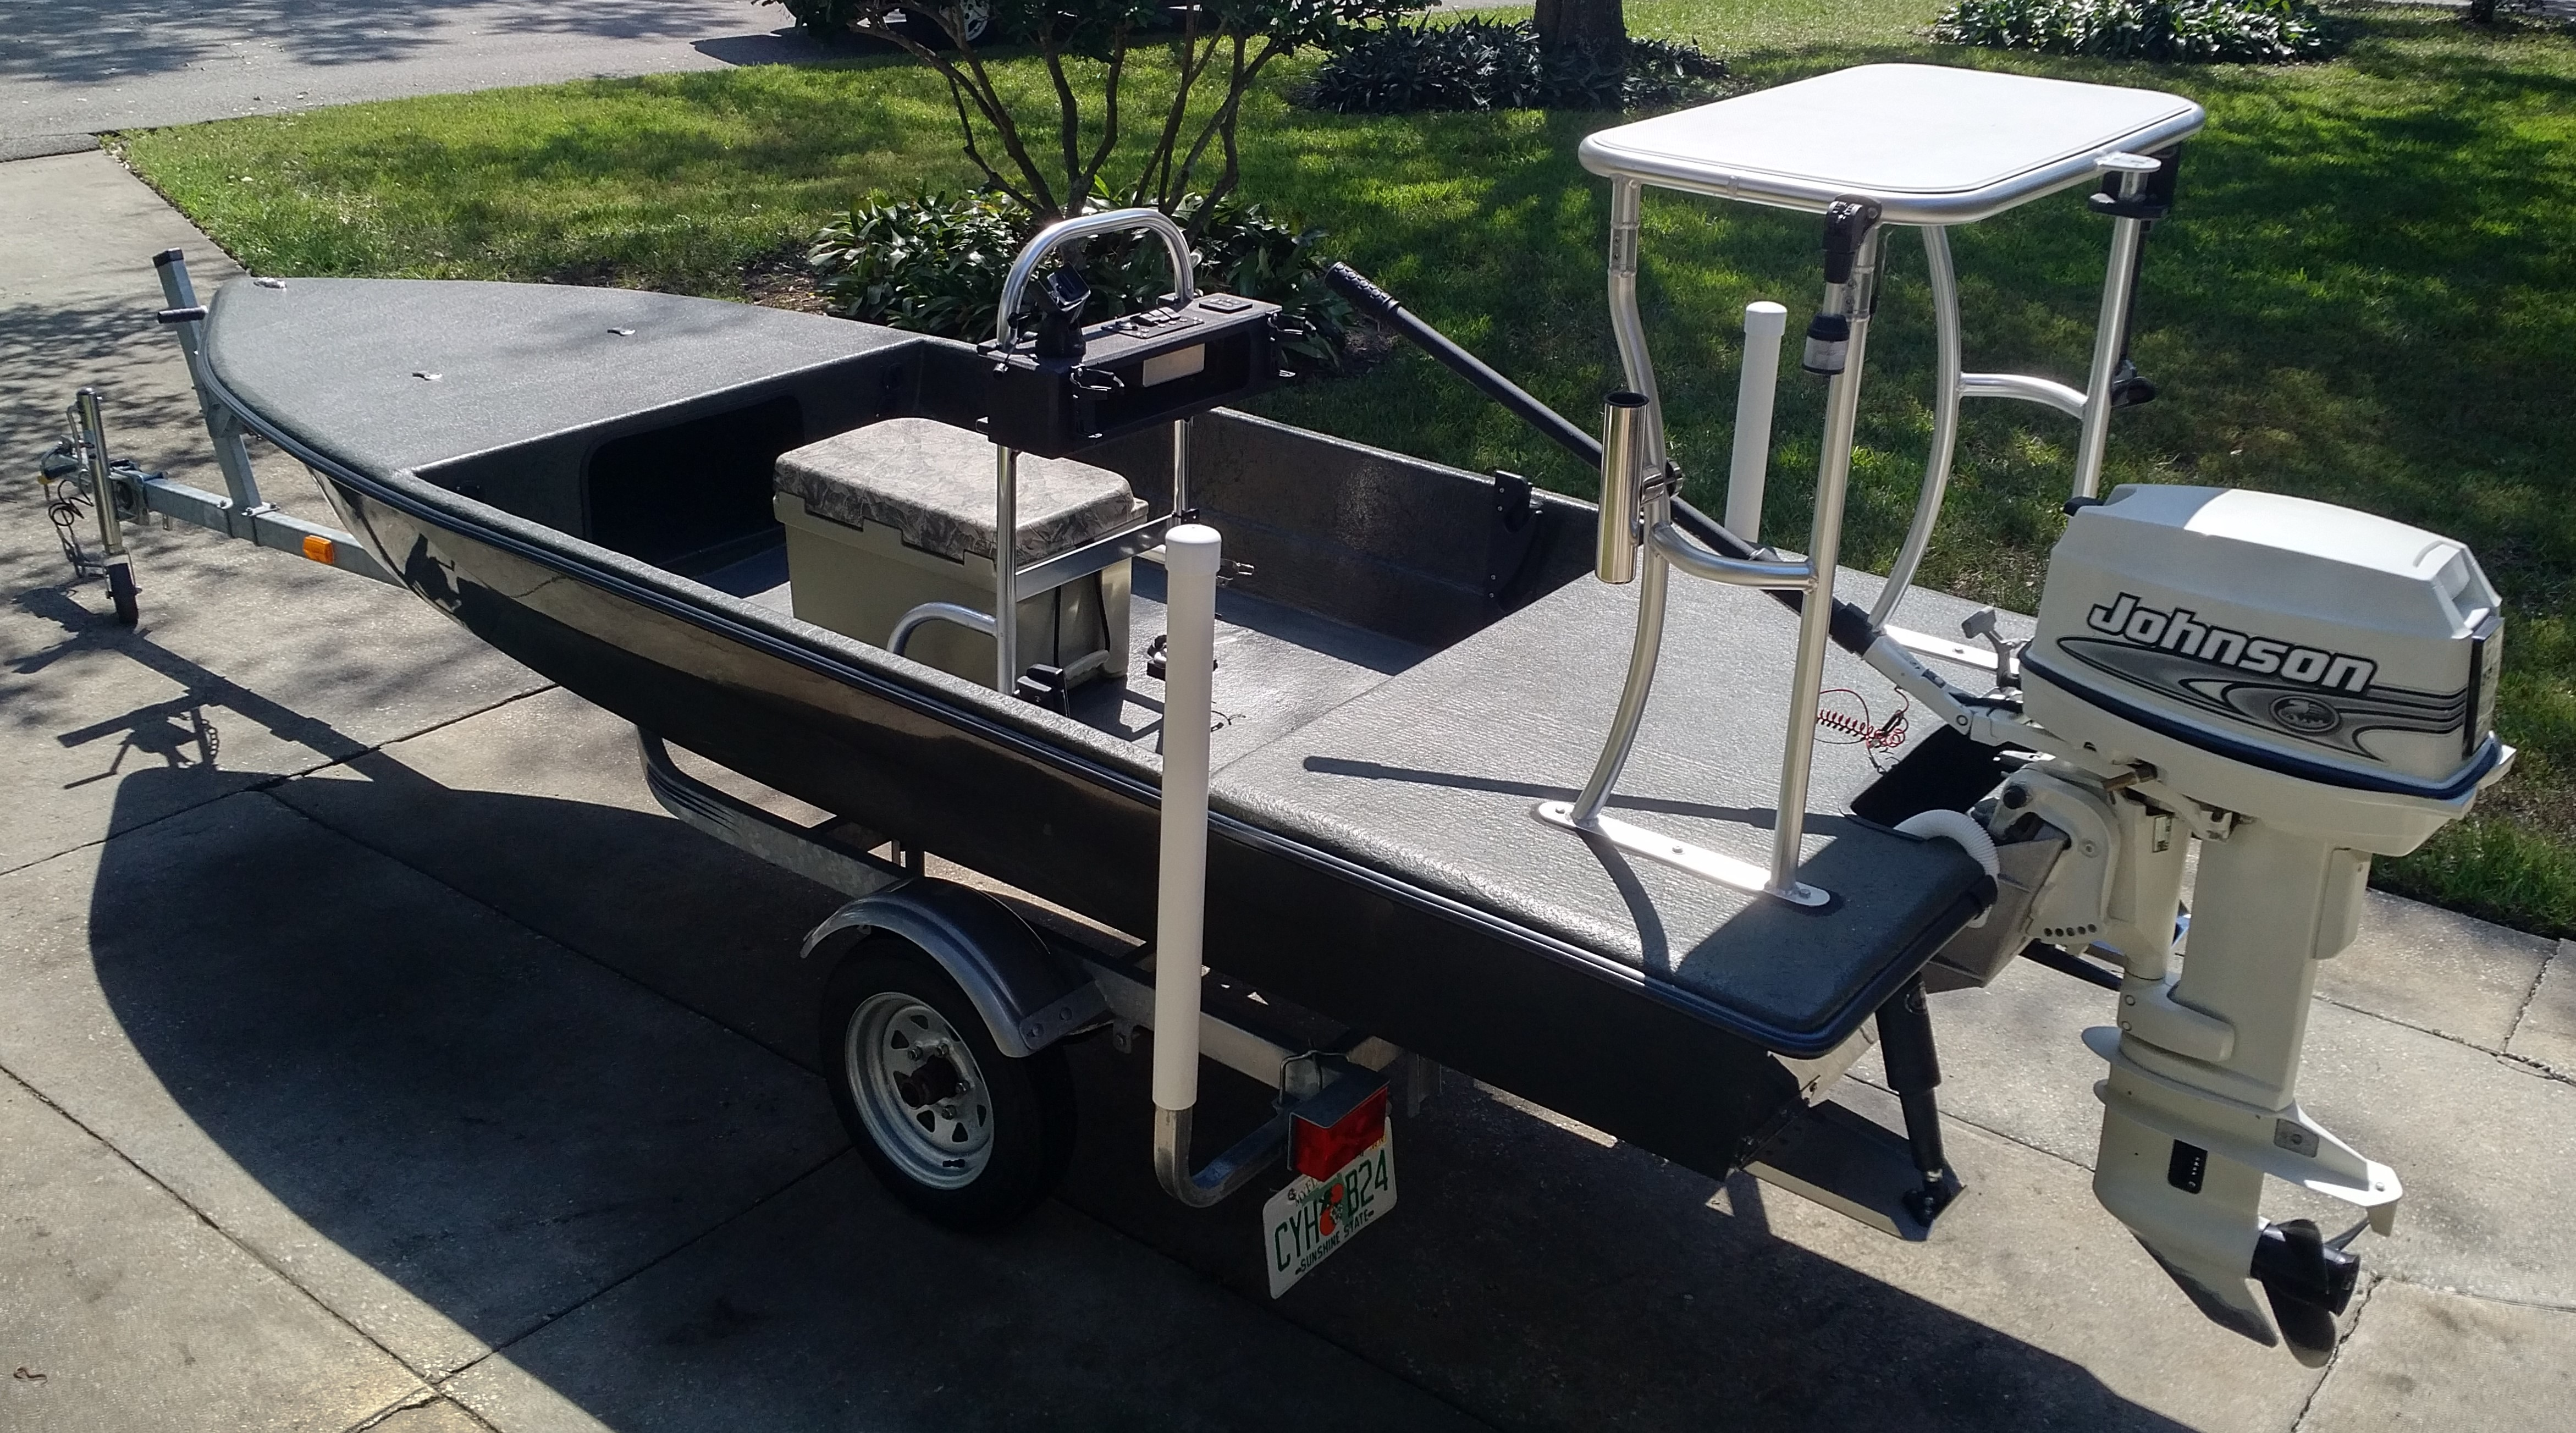 Skimmer Skiff 14'6 WANTED   Microskiff - Dedicated To The